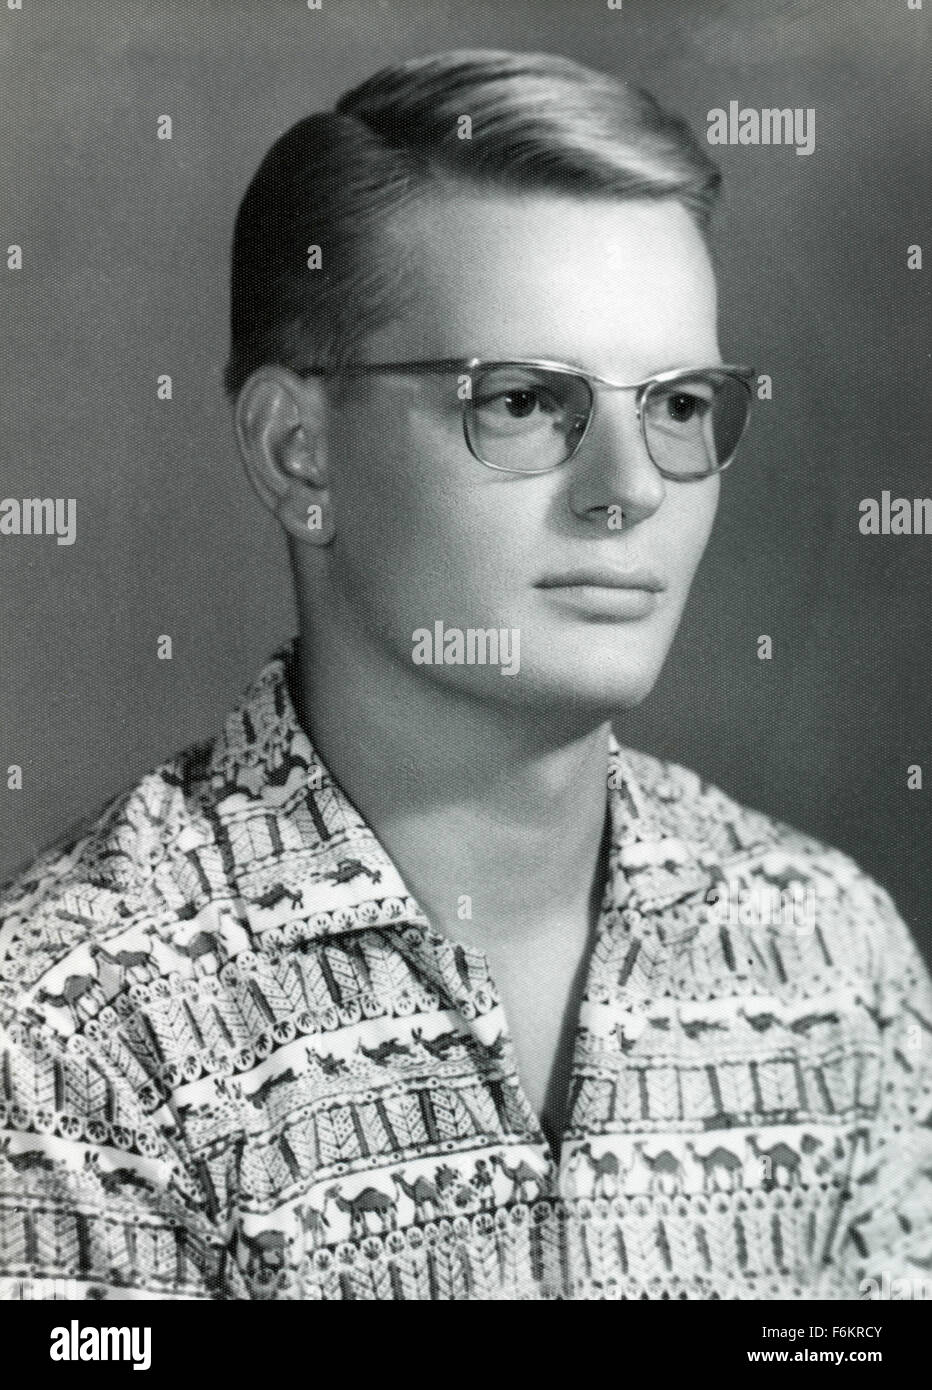 Portrait of a boy from the 60s, Denmark - Stock Image